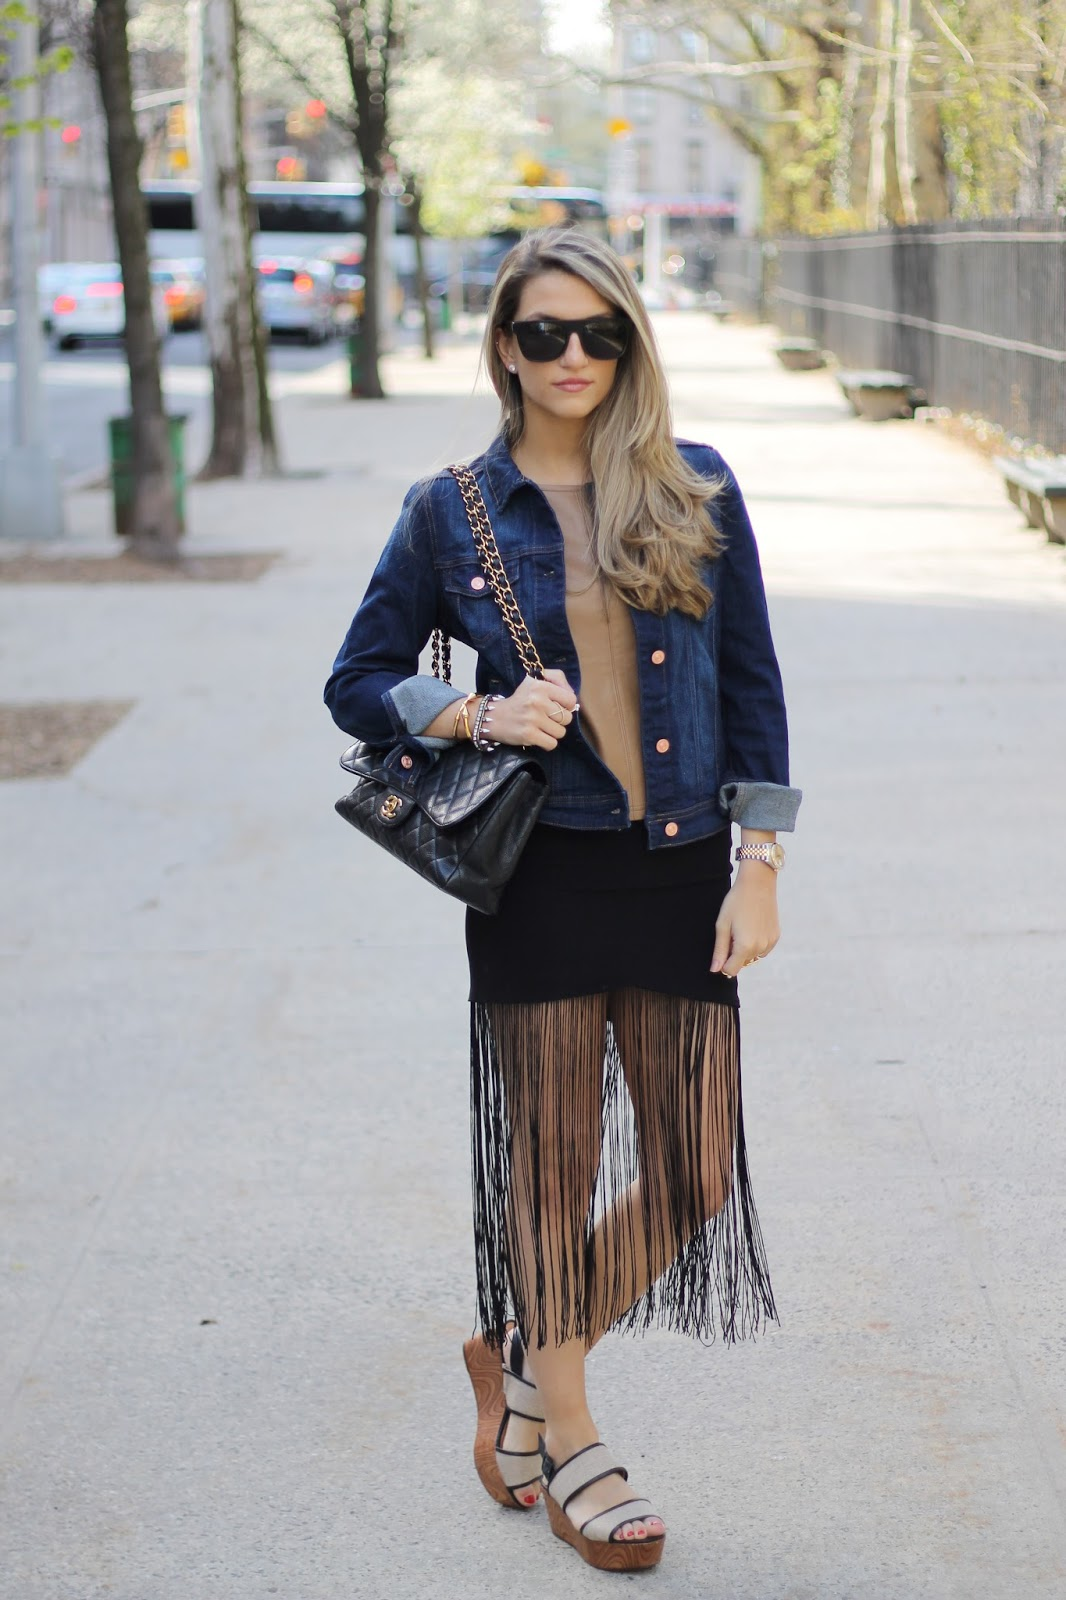 Schutz Emiliany Flatform Sandals, Line & Dot Gloss Fringe Skirt,  Mango Dark Denim Jacket,  Chanel Classic Flap Bag,  Super Flat Top Sunglasses